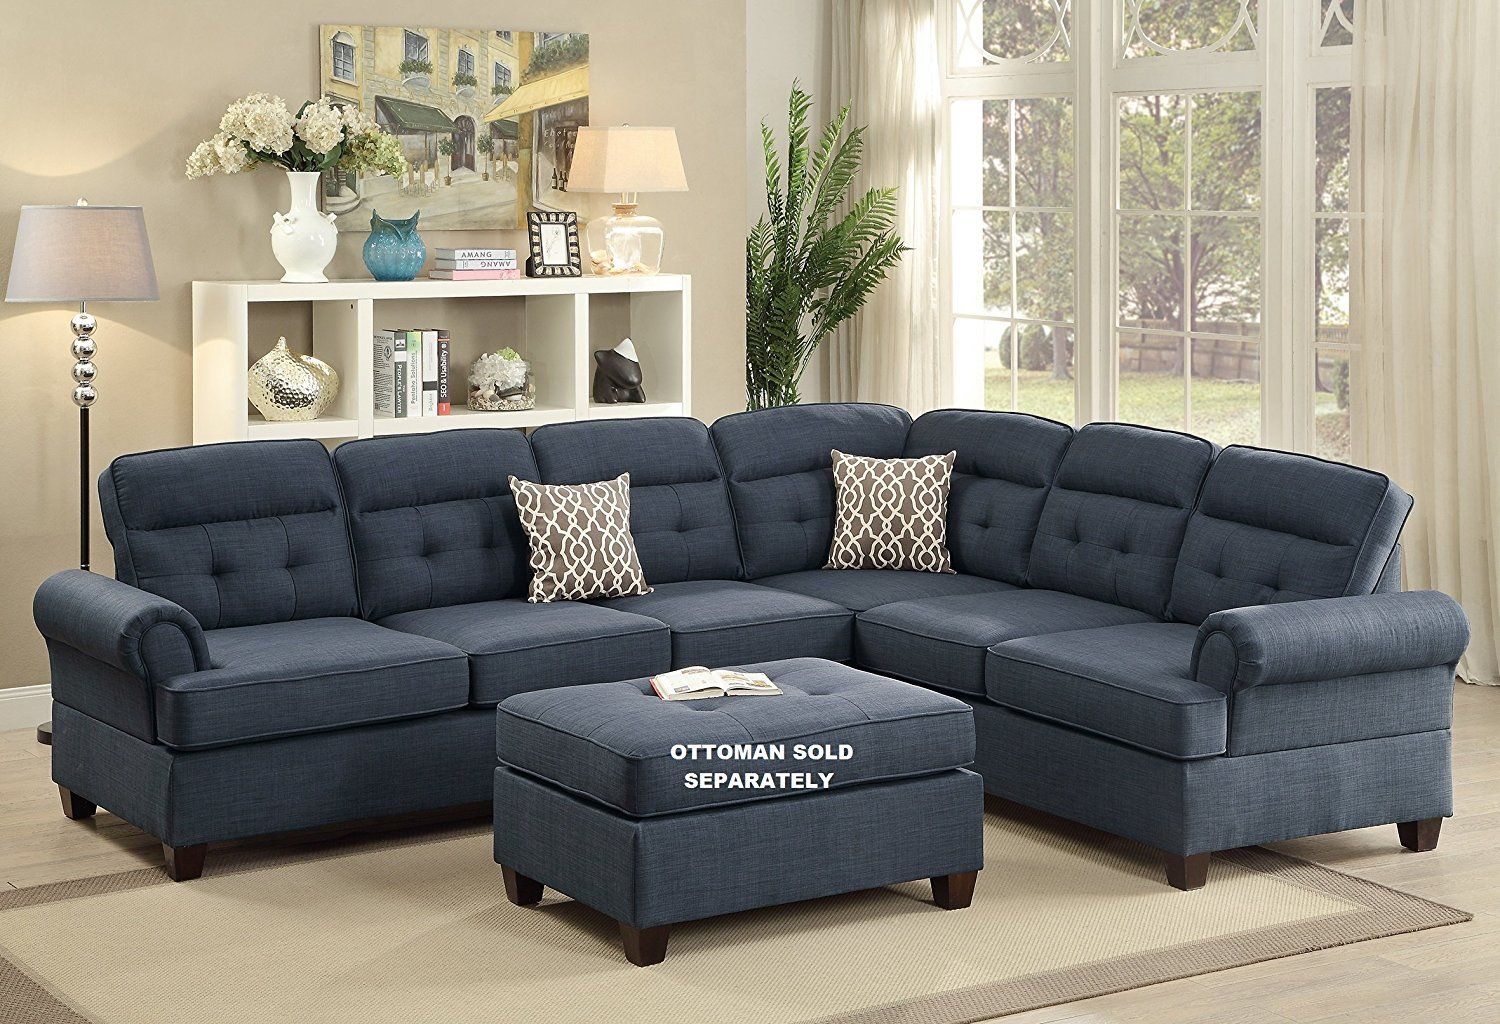 amazon sofa set twin bed mattress topper 996 com tynan 2 pieces sectional upholstered in dark blue dorris fabric kitchen dining